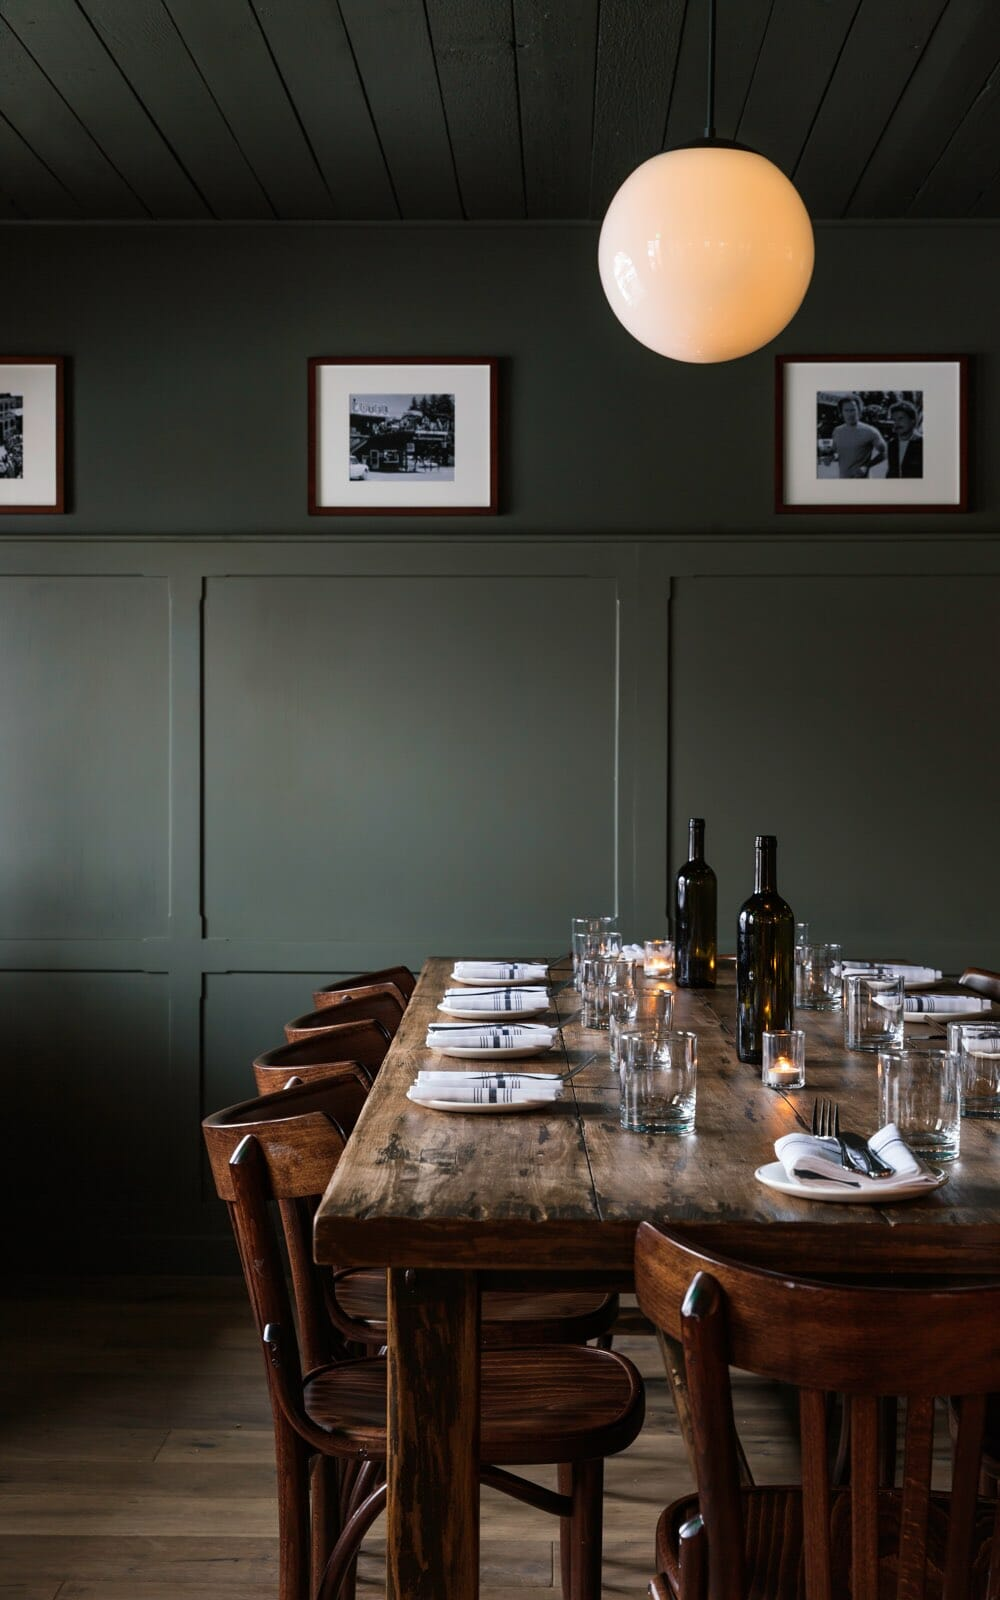 Glorietta restaurant dark wood table with chairs and seating for five people